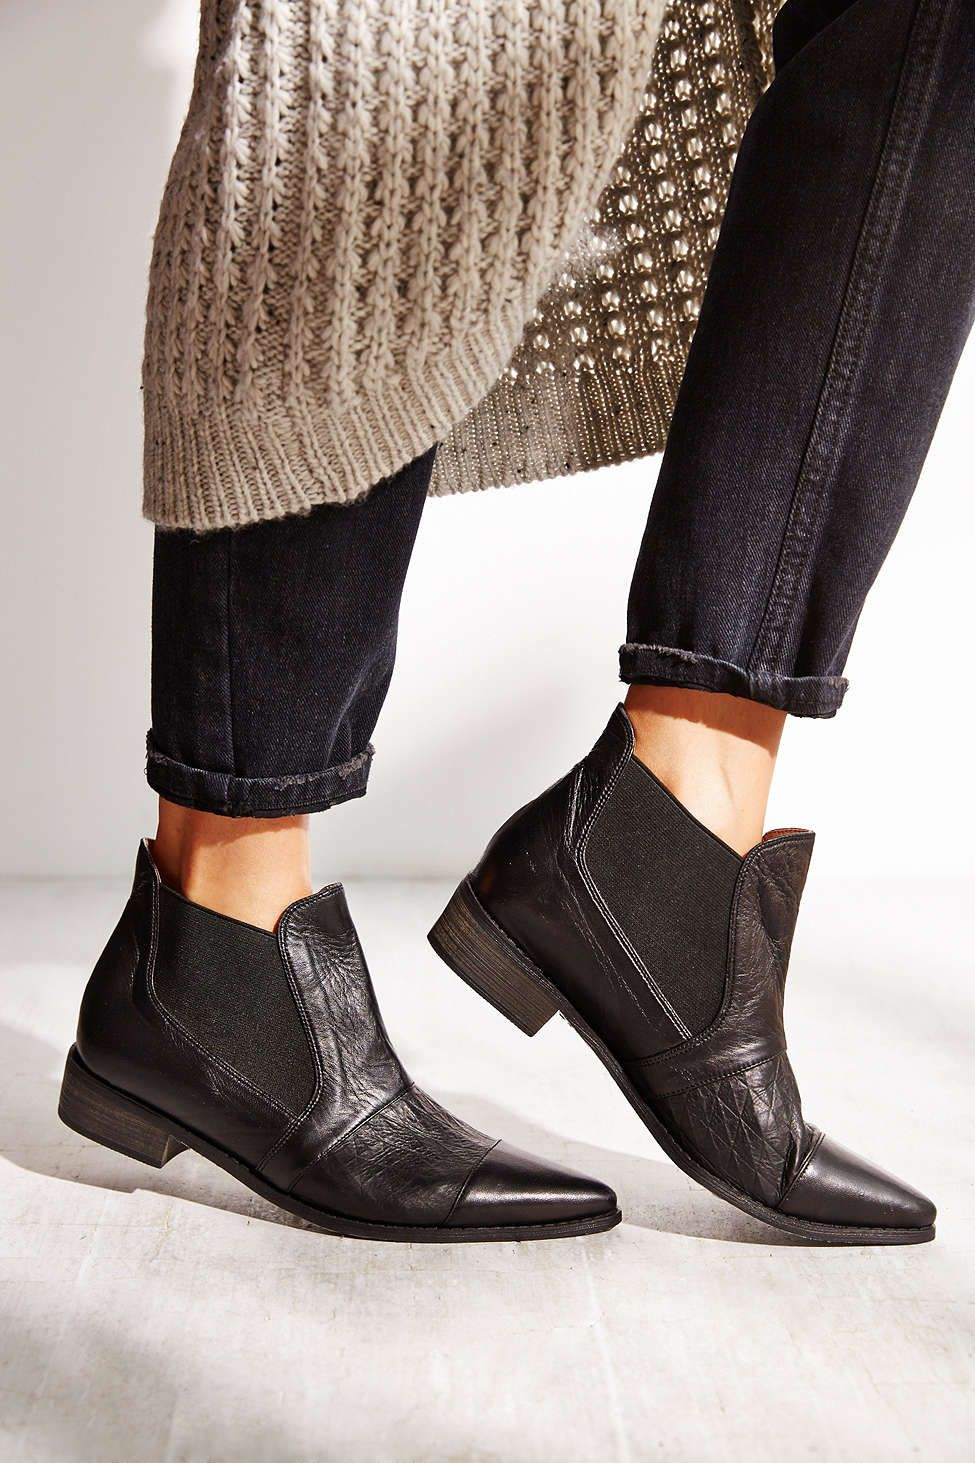 the black chelsea boot